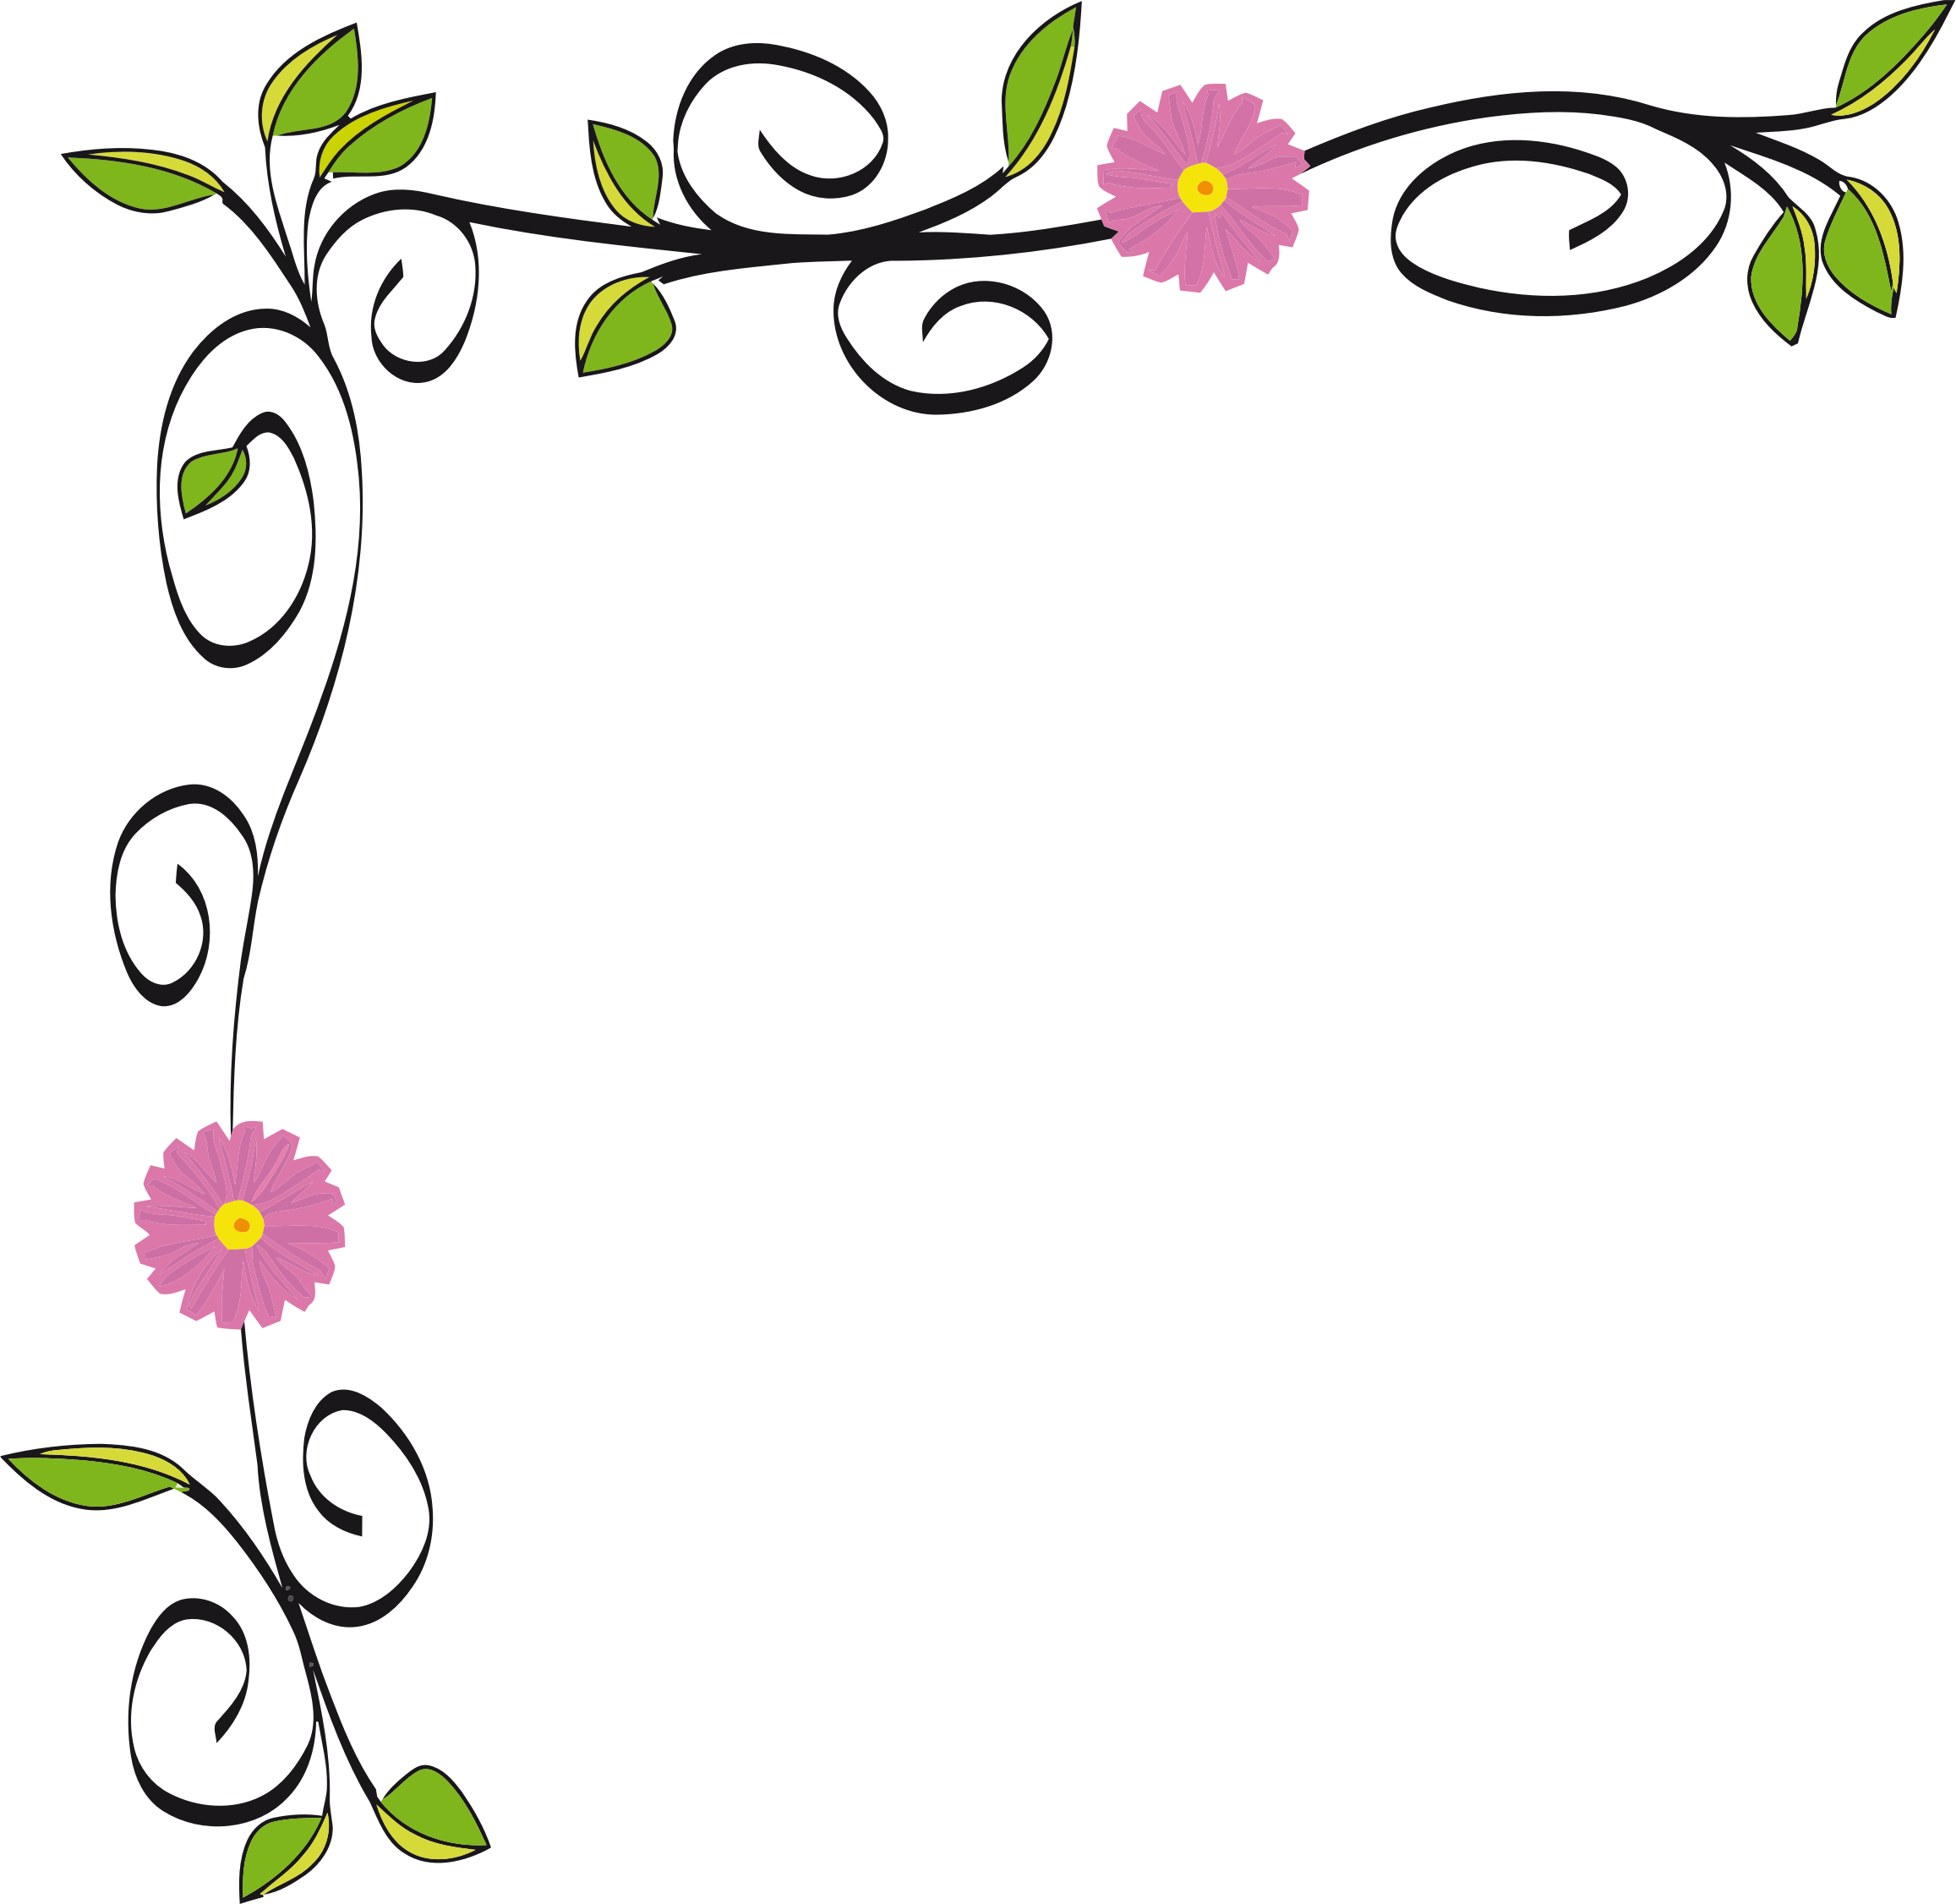 floral border vectorized by gdj